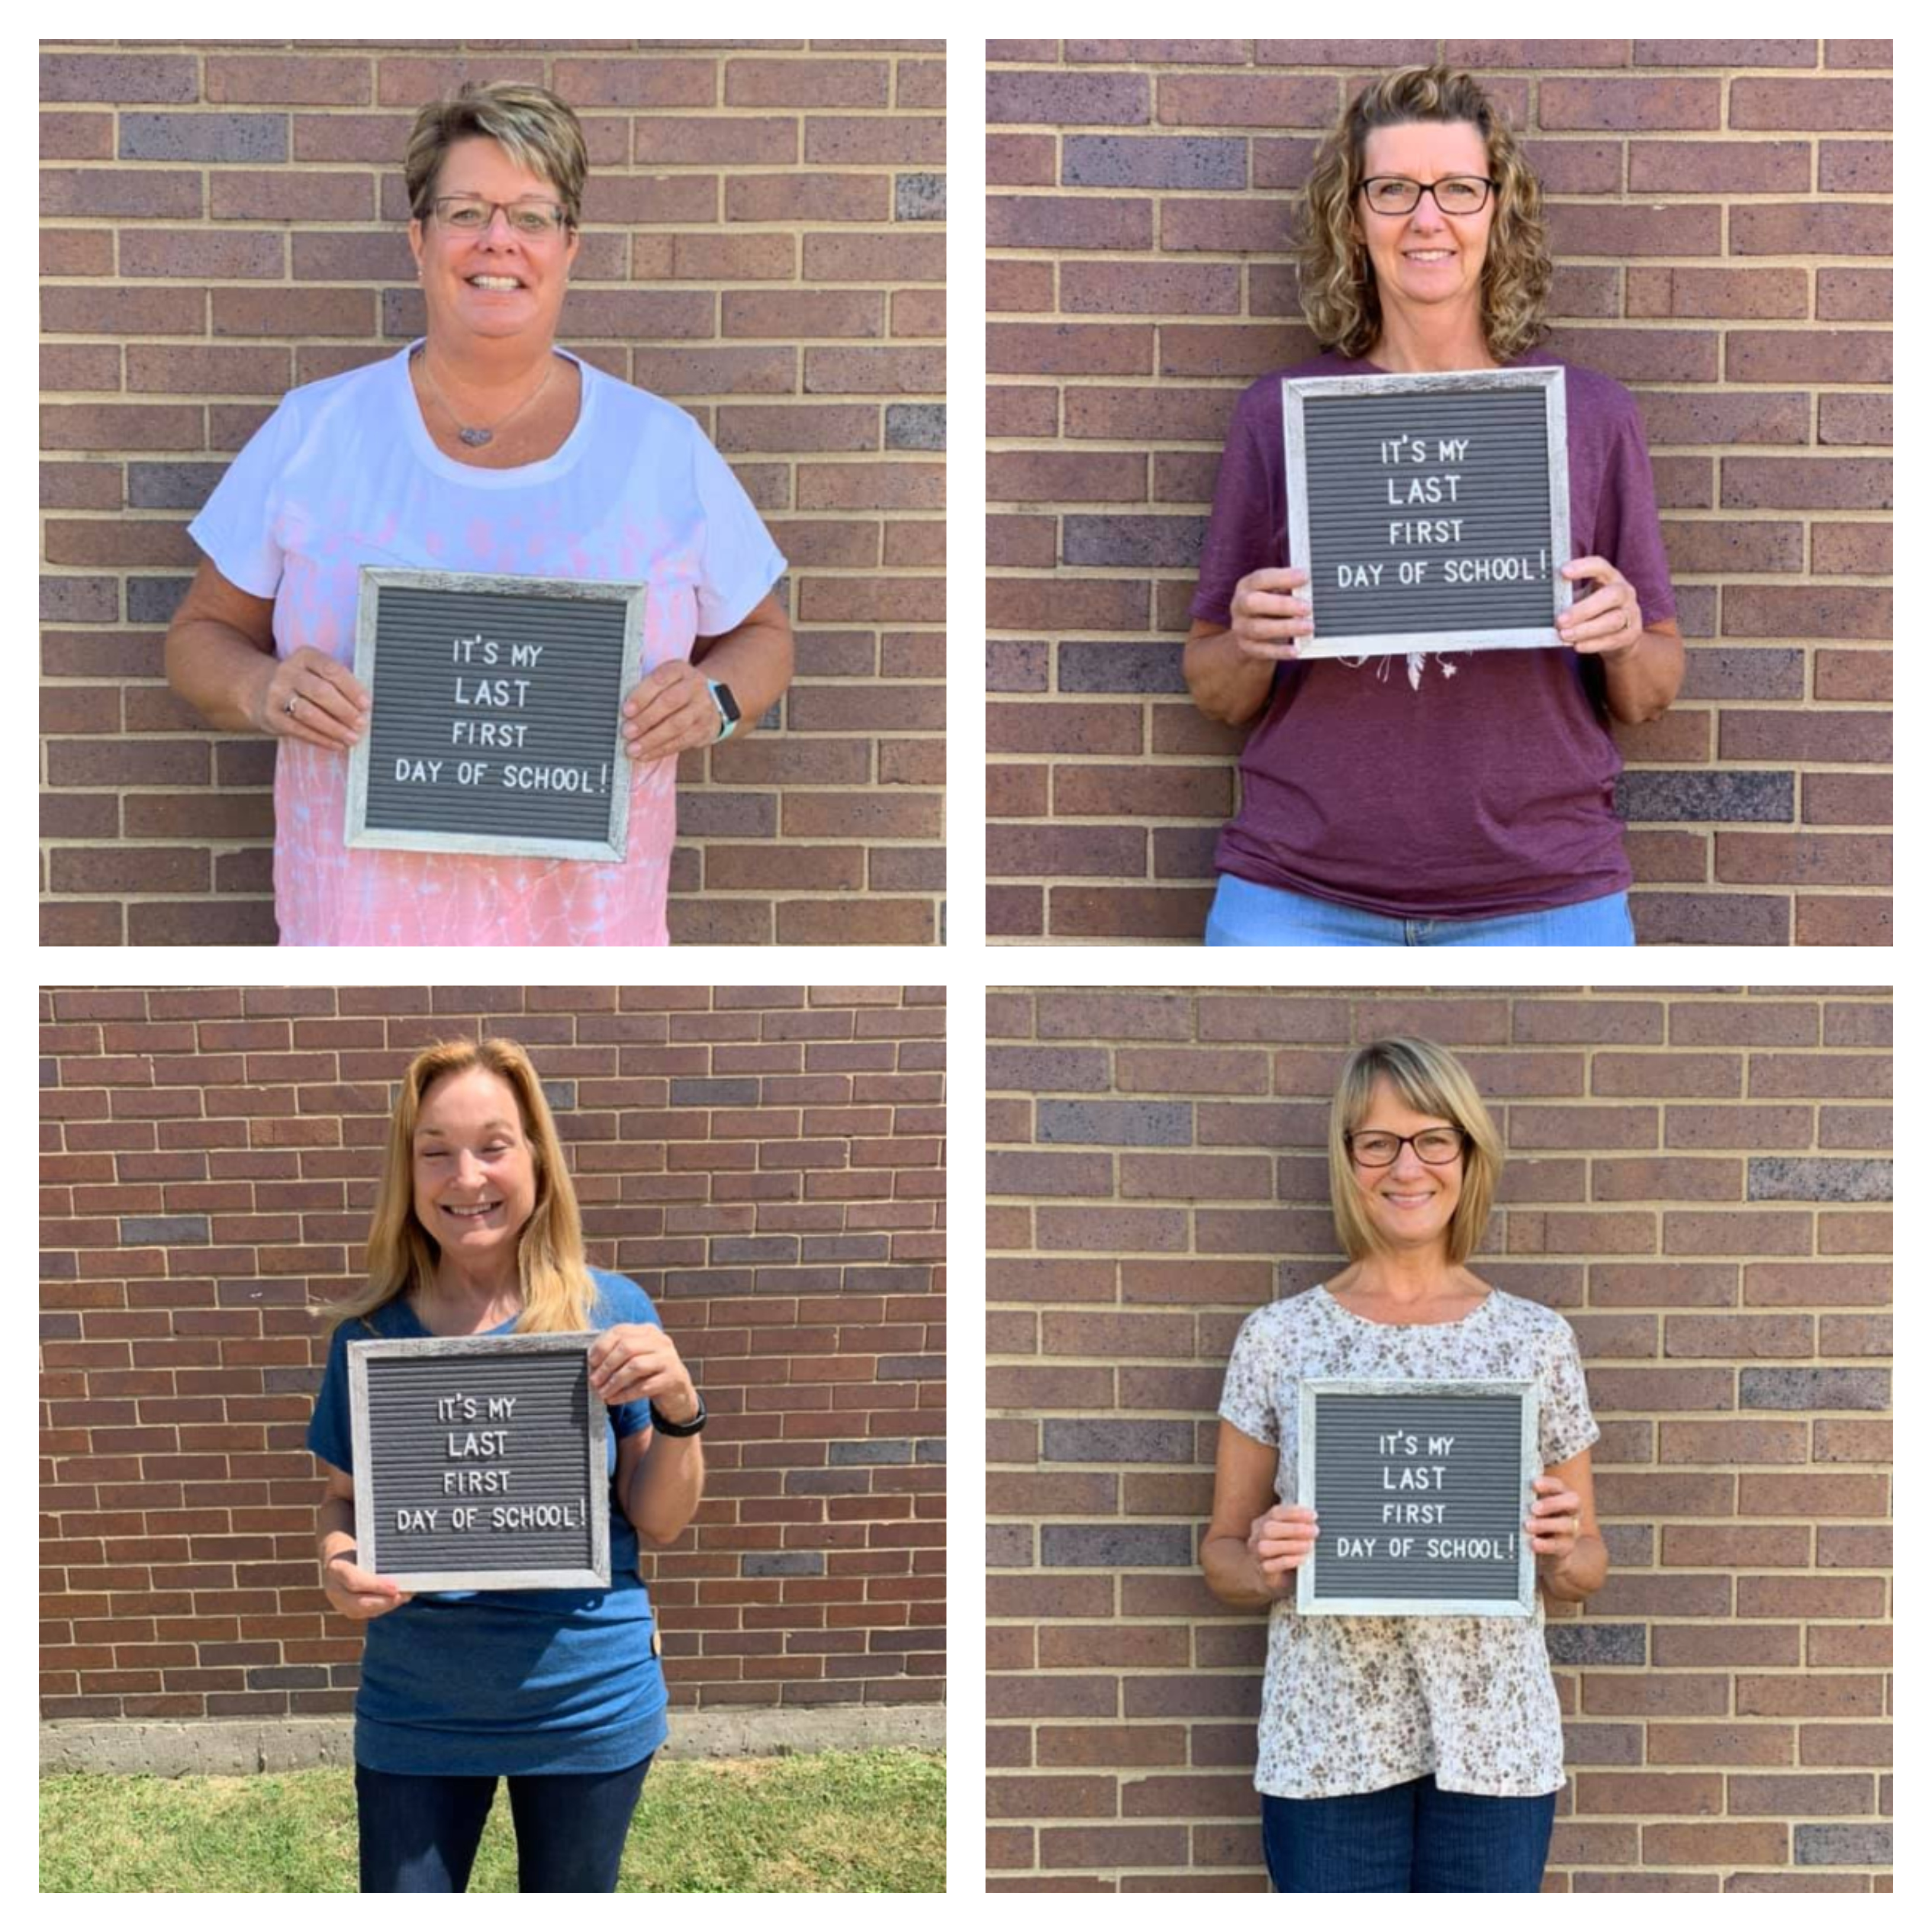 Last First Day of School for these great teachers!